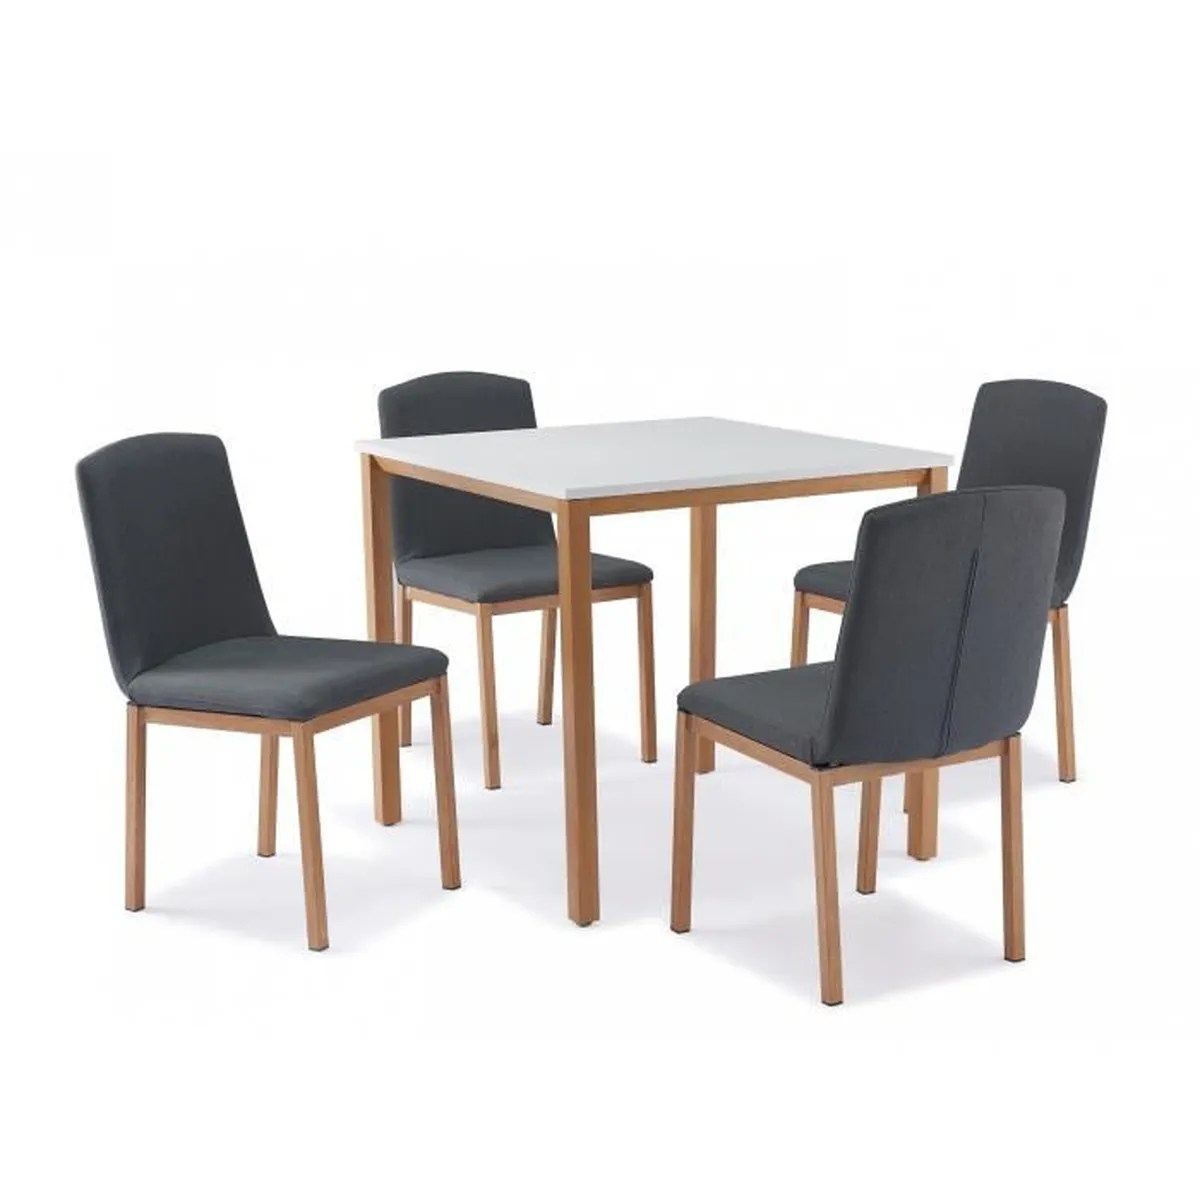 Table Chaises Scandinaves Table CarrÉe 4 Chaises Scandinave